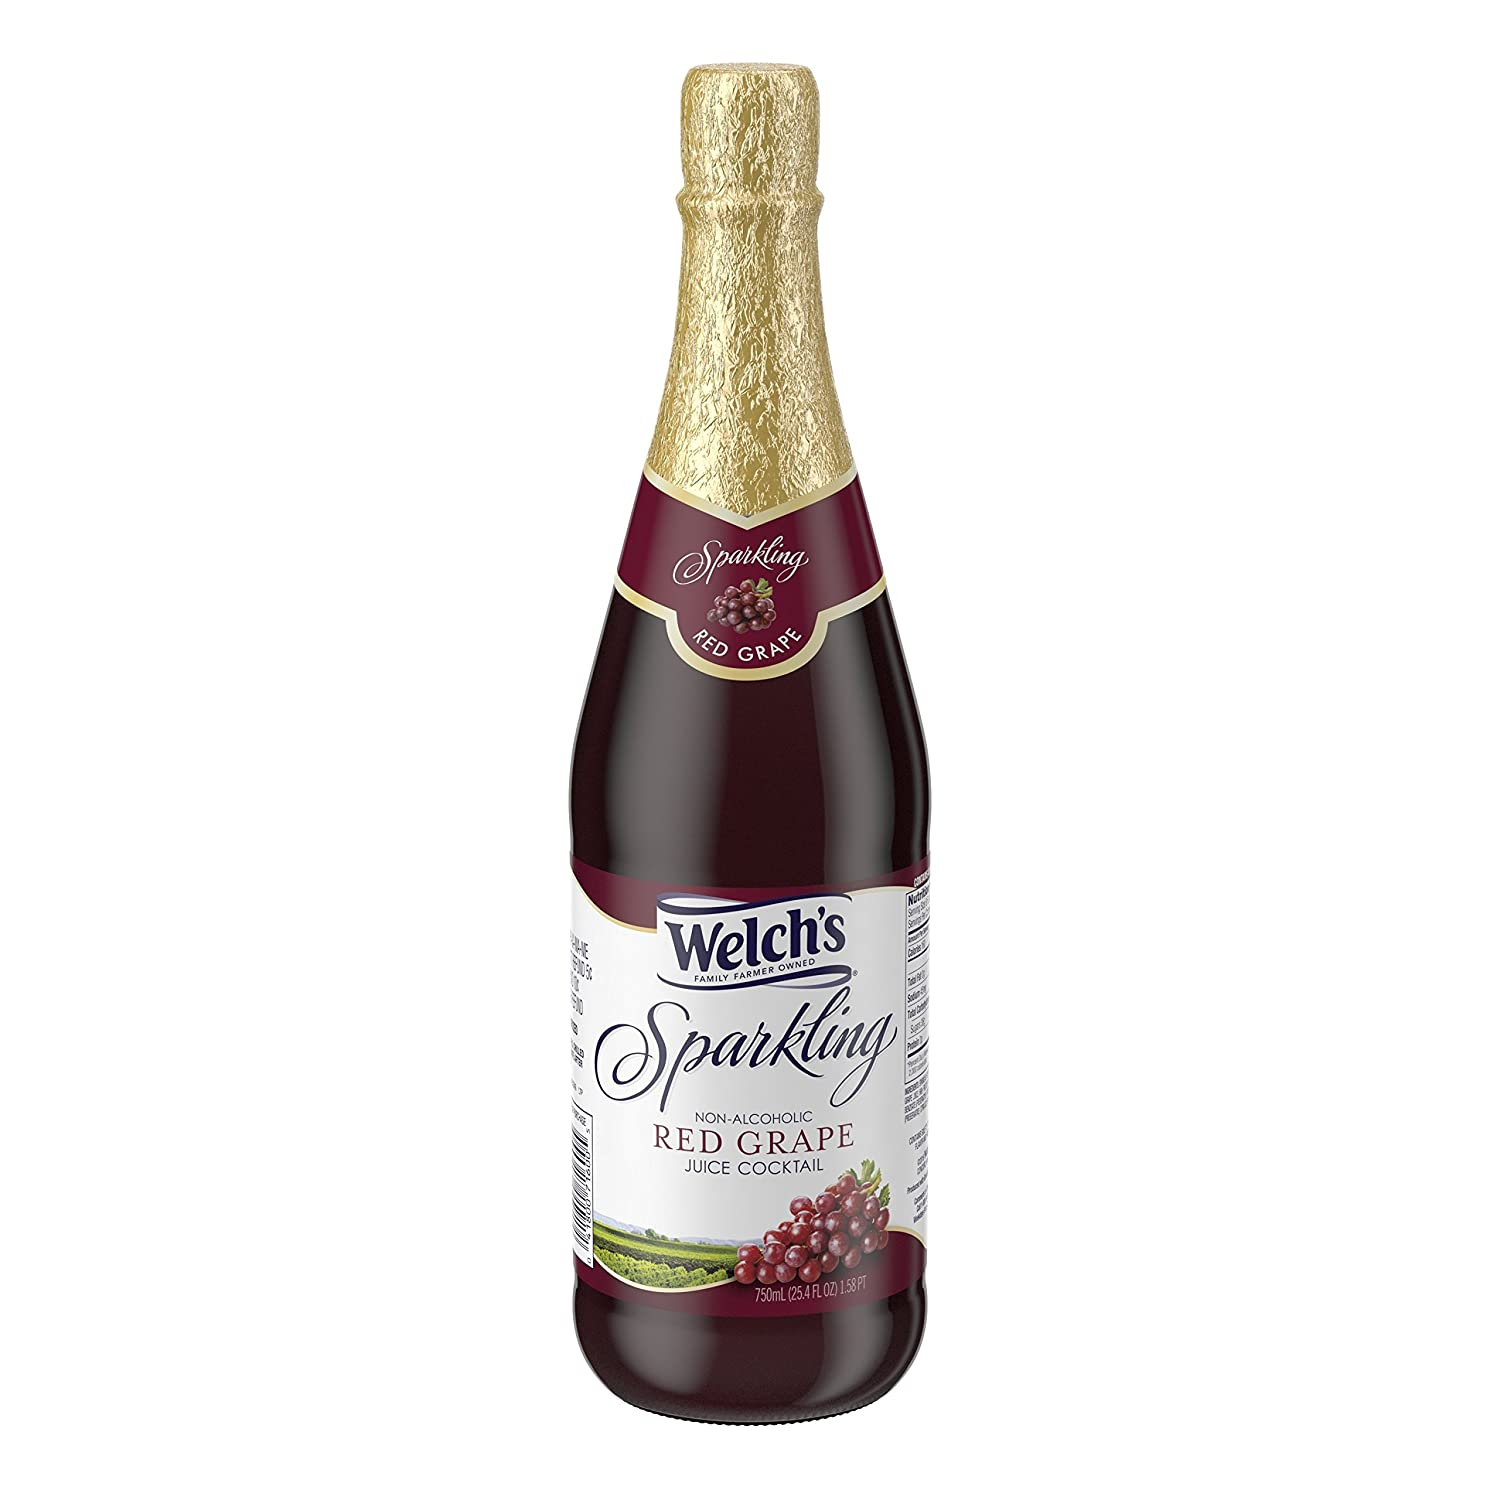 Welch's Sparkling Juice Cocktail, Non-Alcoholic, Red Grape, 25.4 Ounce (Pack of 12)